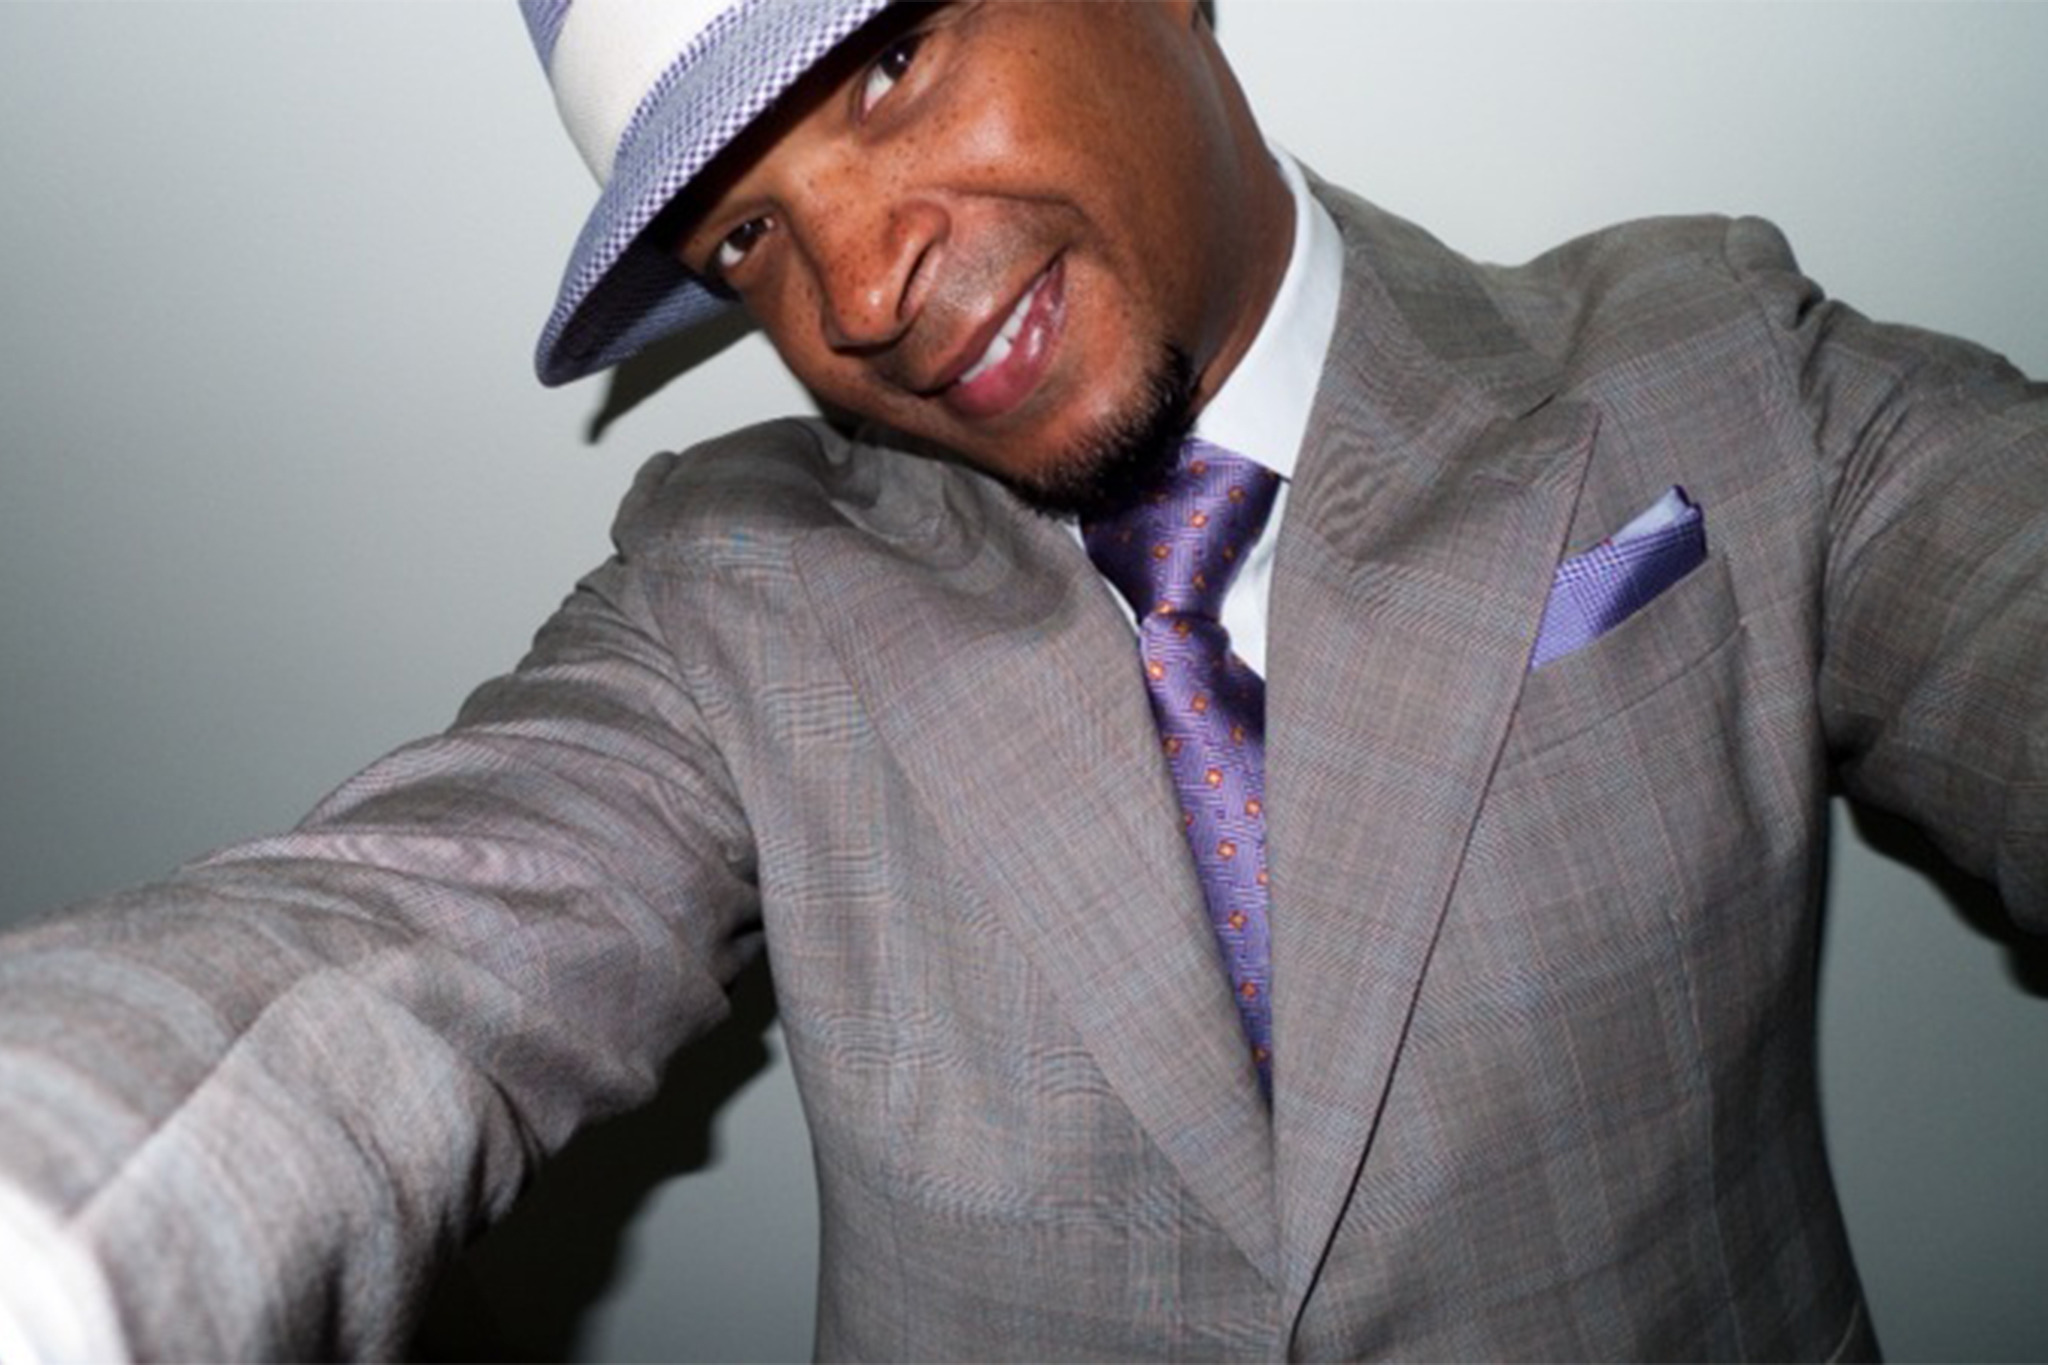 Spend some time with official Wayans brother Damon Wayans